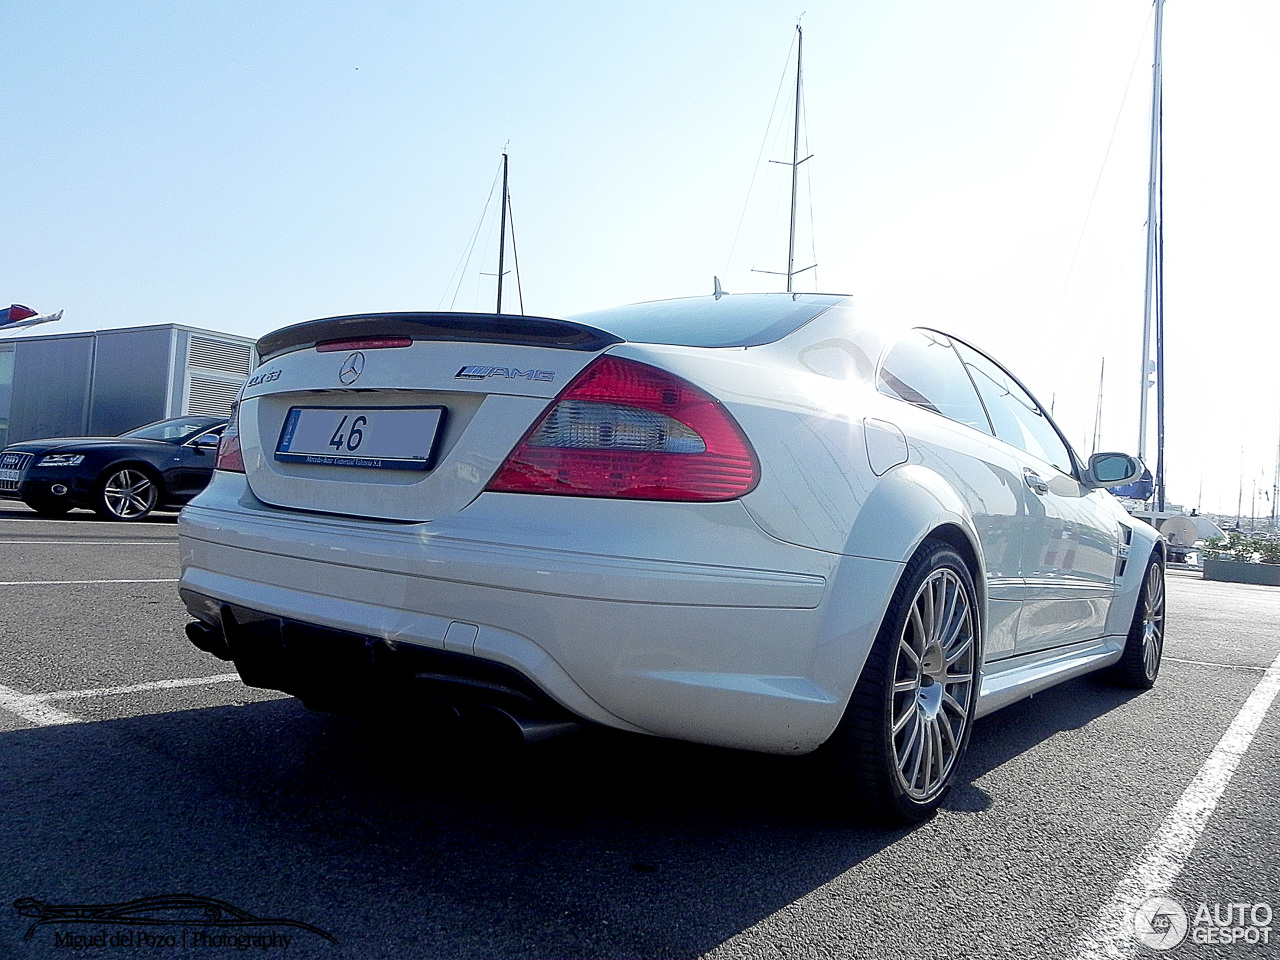 Mercedes benz clk 63 amg black series 22 october 2014 for Mercedes benz clk 63